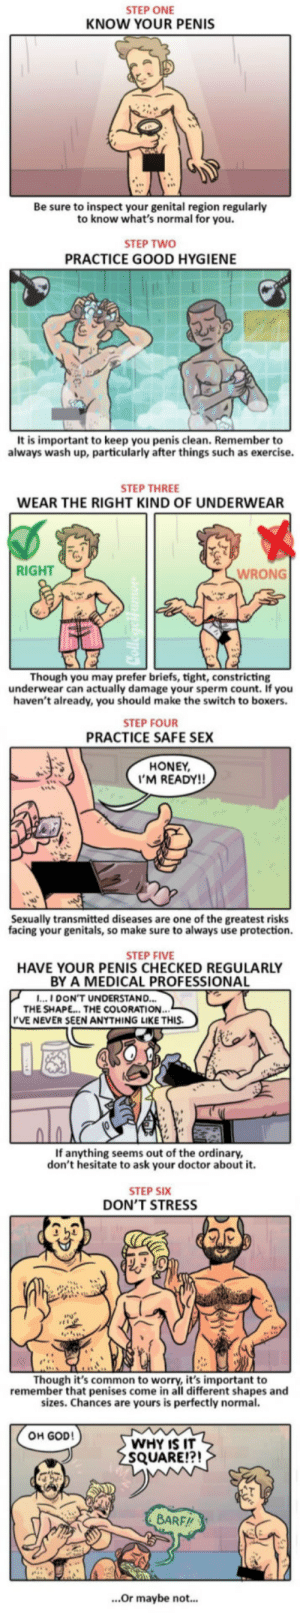 6 Things You Need To Do To Keep Your Penis Healthy: STEP ONE  KNOW YOUR PENIS  Be sure to inspect your genital region regularly  to know what's normal for you.  STEP TWO  PRACTICE GOOD HYGIENE  It is important to keep you penis clean. Remember to  always wash up, particularly after things such as exercise.  STEP THREE  WEAR THE RIGHT KIND OF UNDERWEAR  RIGHT  WRONG  Though you may prefer briefs, tight, constricting  underwear can actually damage your sperm count. If you  haven't already, you should make the switch to boxers.  STEP FOUR  PRACTICE SAFE SEX  HONEY  'M READY!!  Sexually transmitted diseases are one of the greatest risks  facing your genitals, so make sure to always use protection.  STEP FIVE  HAVE YOUR PENIS CHECKED REGULARLY  BY A MEDICAL PROFESSIONA  ...I DON'T UNDERSTAND...  THE SHAPE... THE COLORATION.  'VE NEVER SEEN ANYTHING LIKE THIS.  If anything seems out of the ordinary,  don't hesitate to ask your doctor about it.  STEP SIX  DON'T STRESS  Though it's common to worry, it's important to  remember that penises come in all different shapes and  sizes. Chances are yours is perfectly normal.  OH GOD!  WHY IS IT  SQUARE!?!  BARF//  ...Or maybe not... 6 Things You Need To Do To Keep Your Penis Healthy